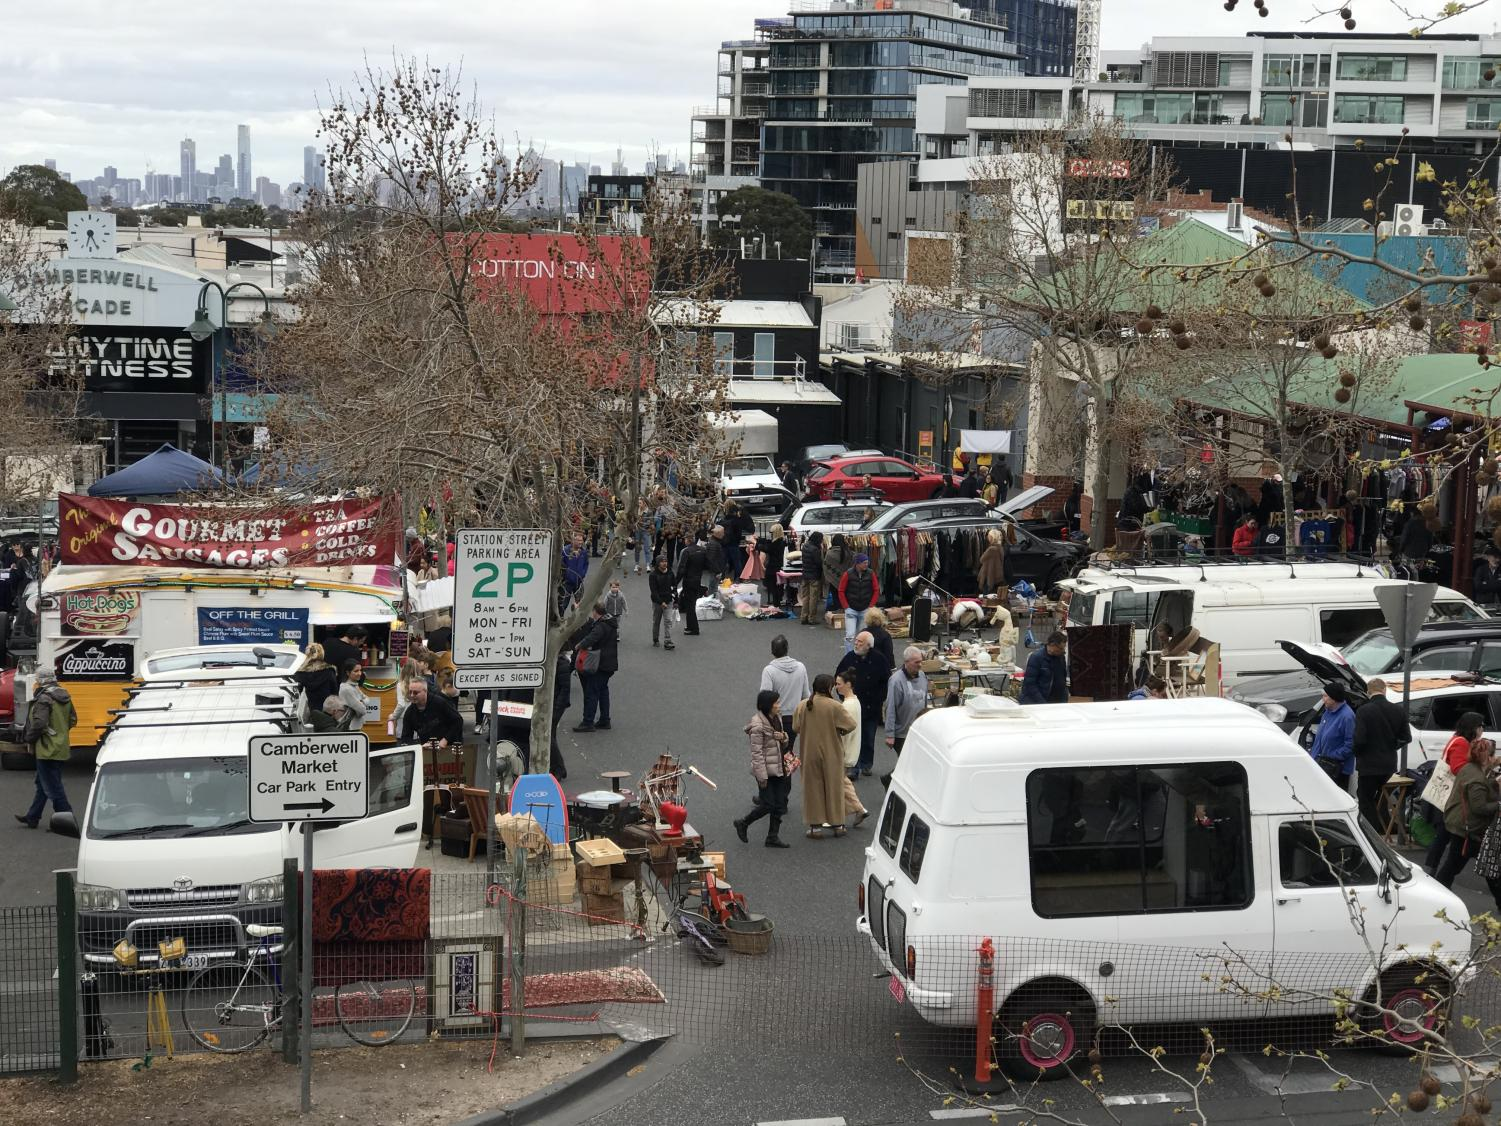 The popular Camberwell Market